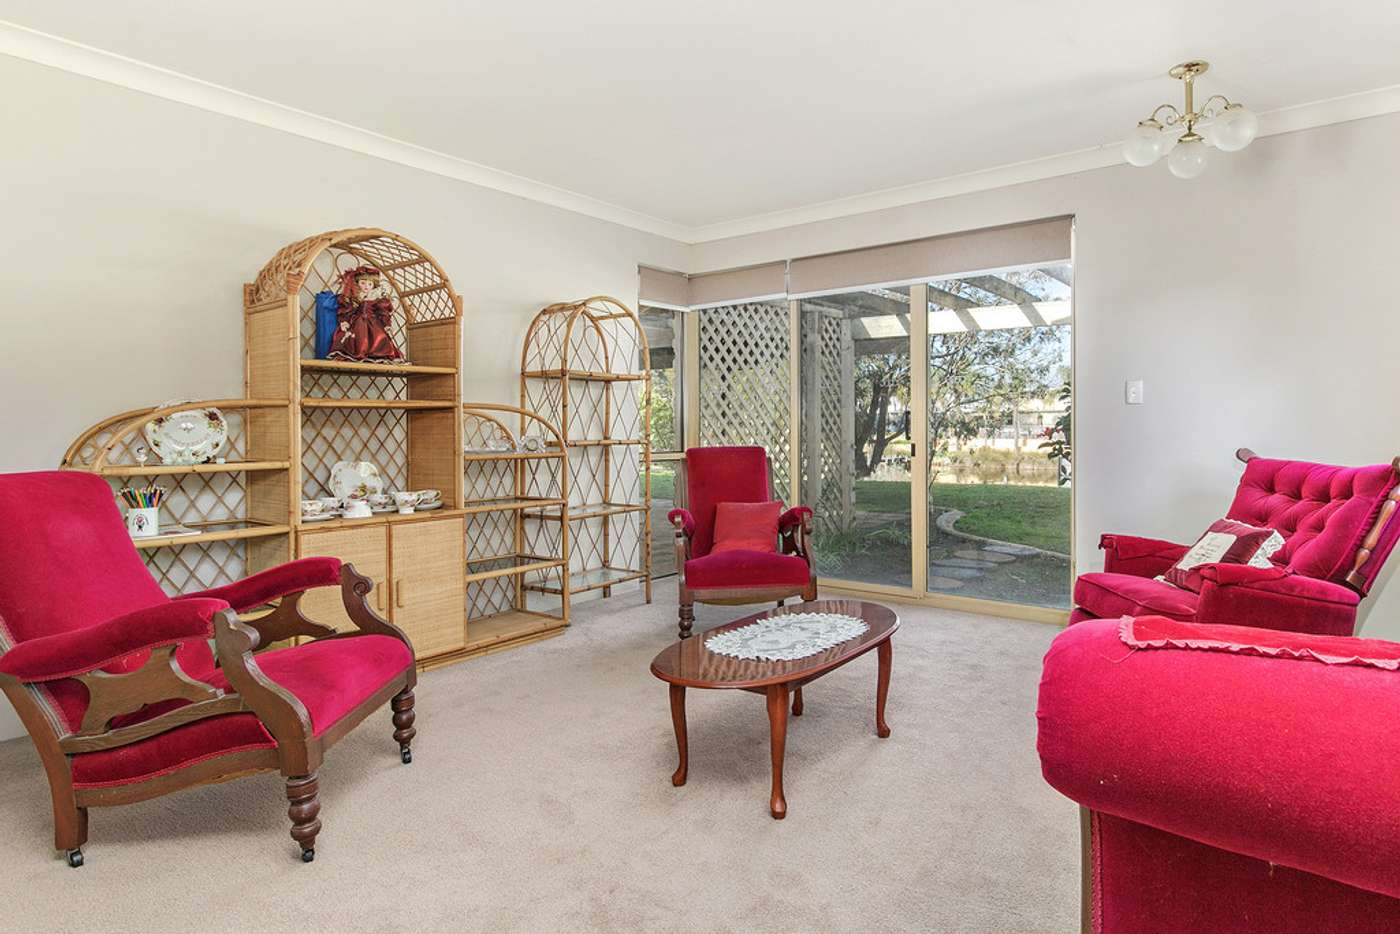 Seventh view of Homely house listing, 8 Wills Way, South Yunderup WA 6208